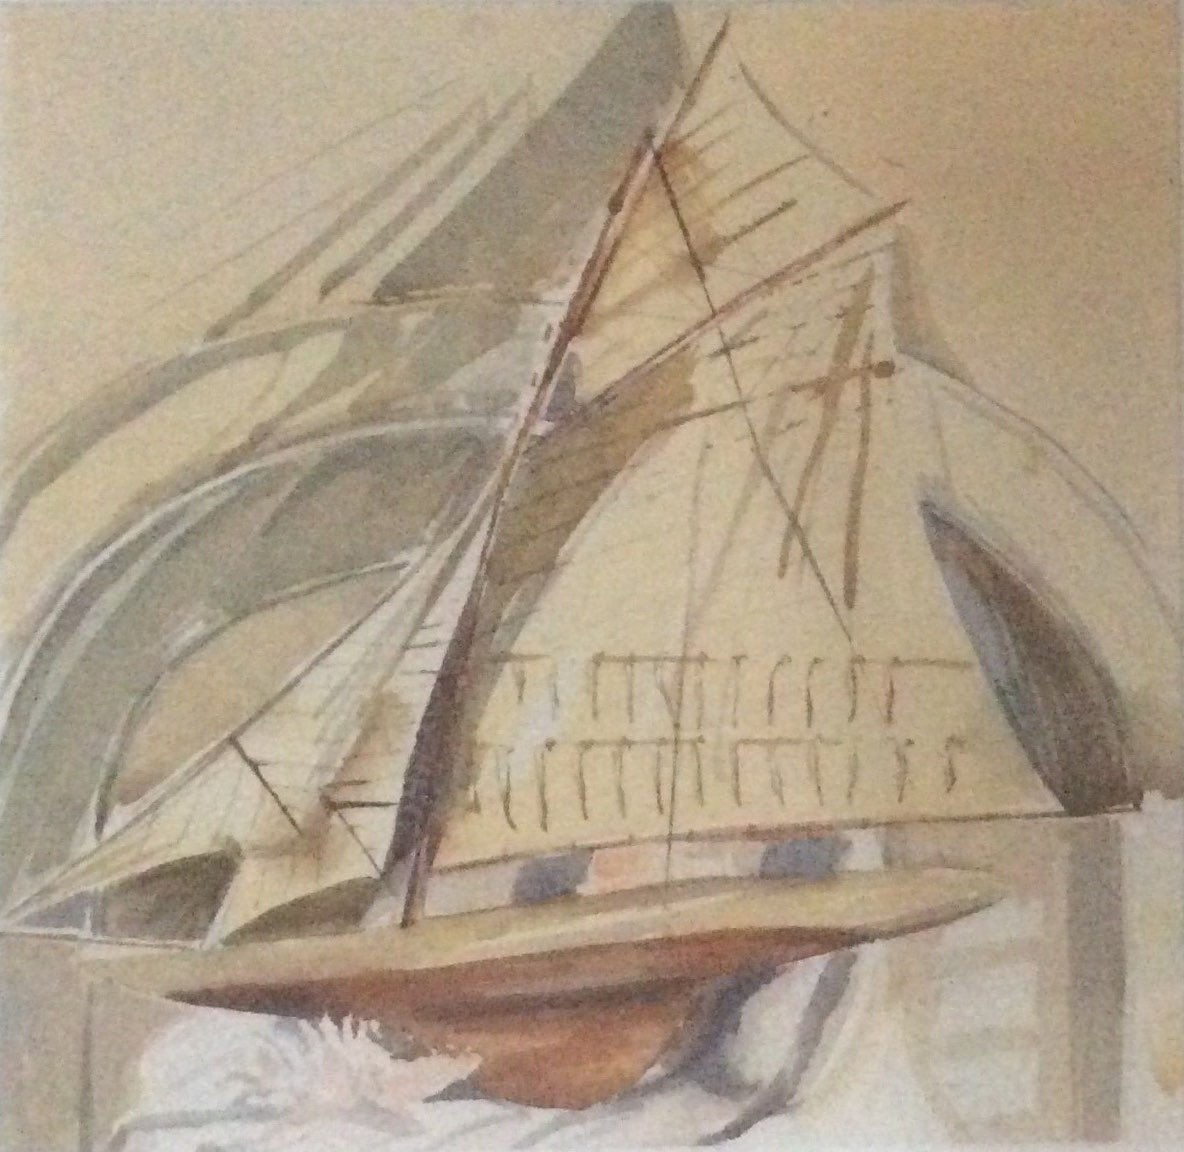 Yacht watercolour 24.5x23.5